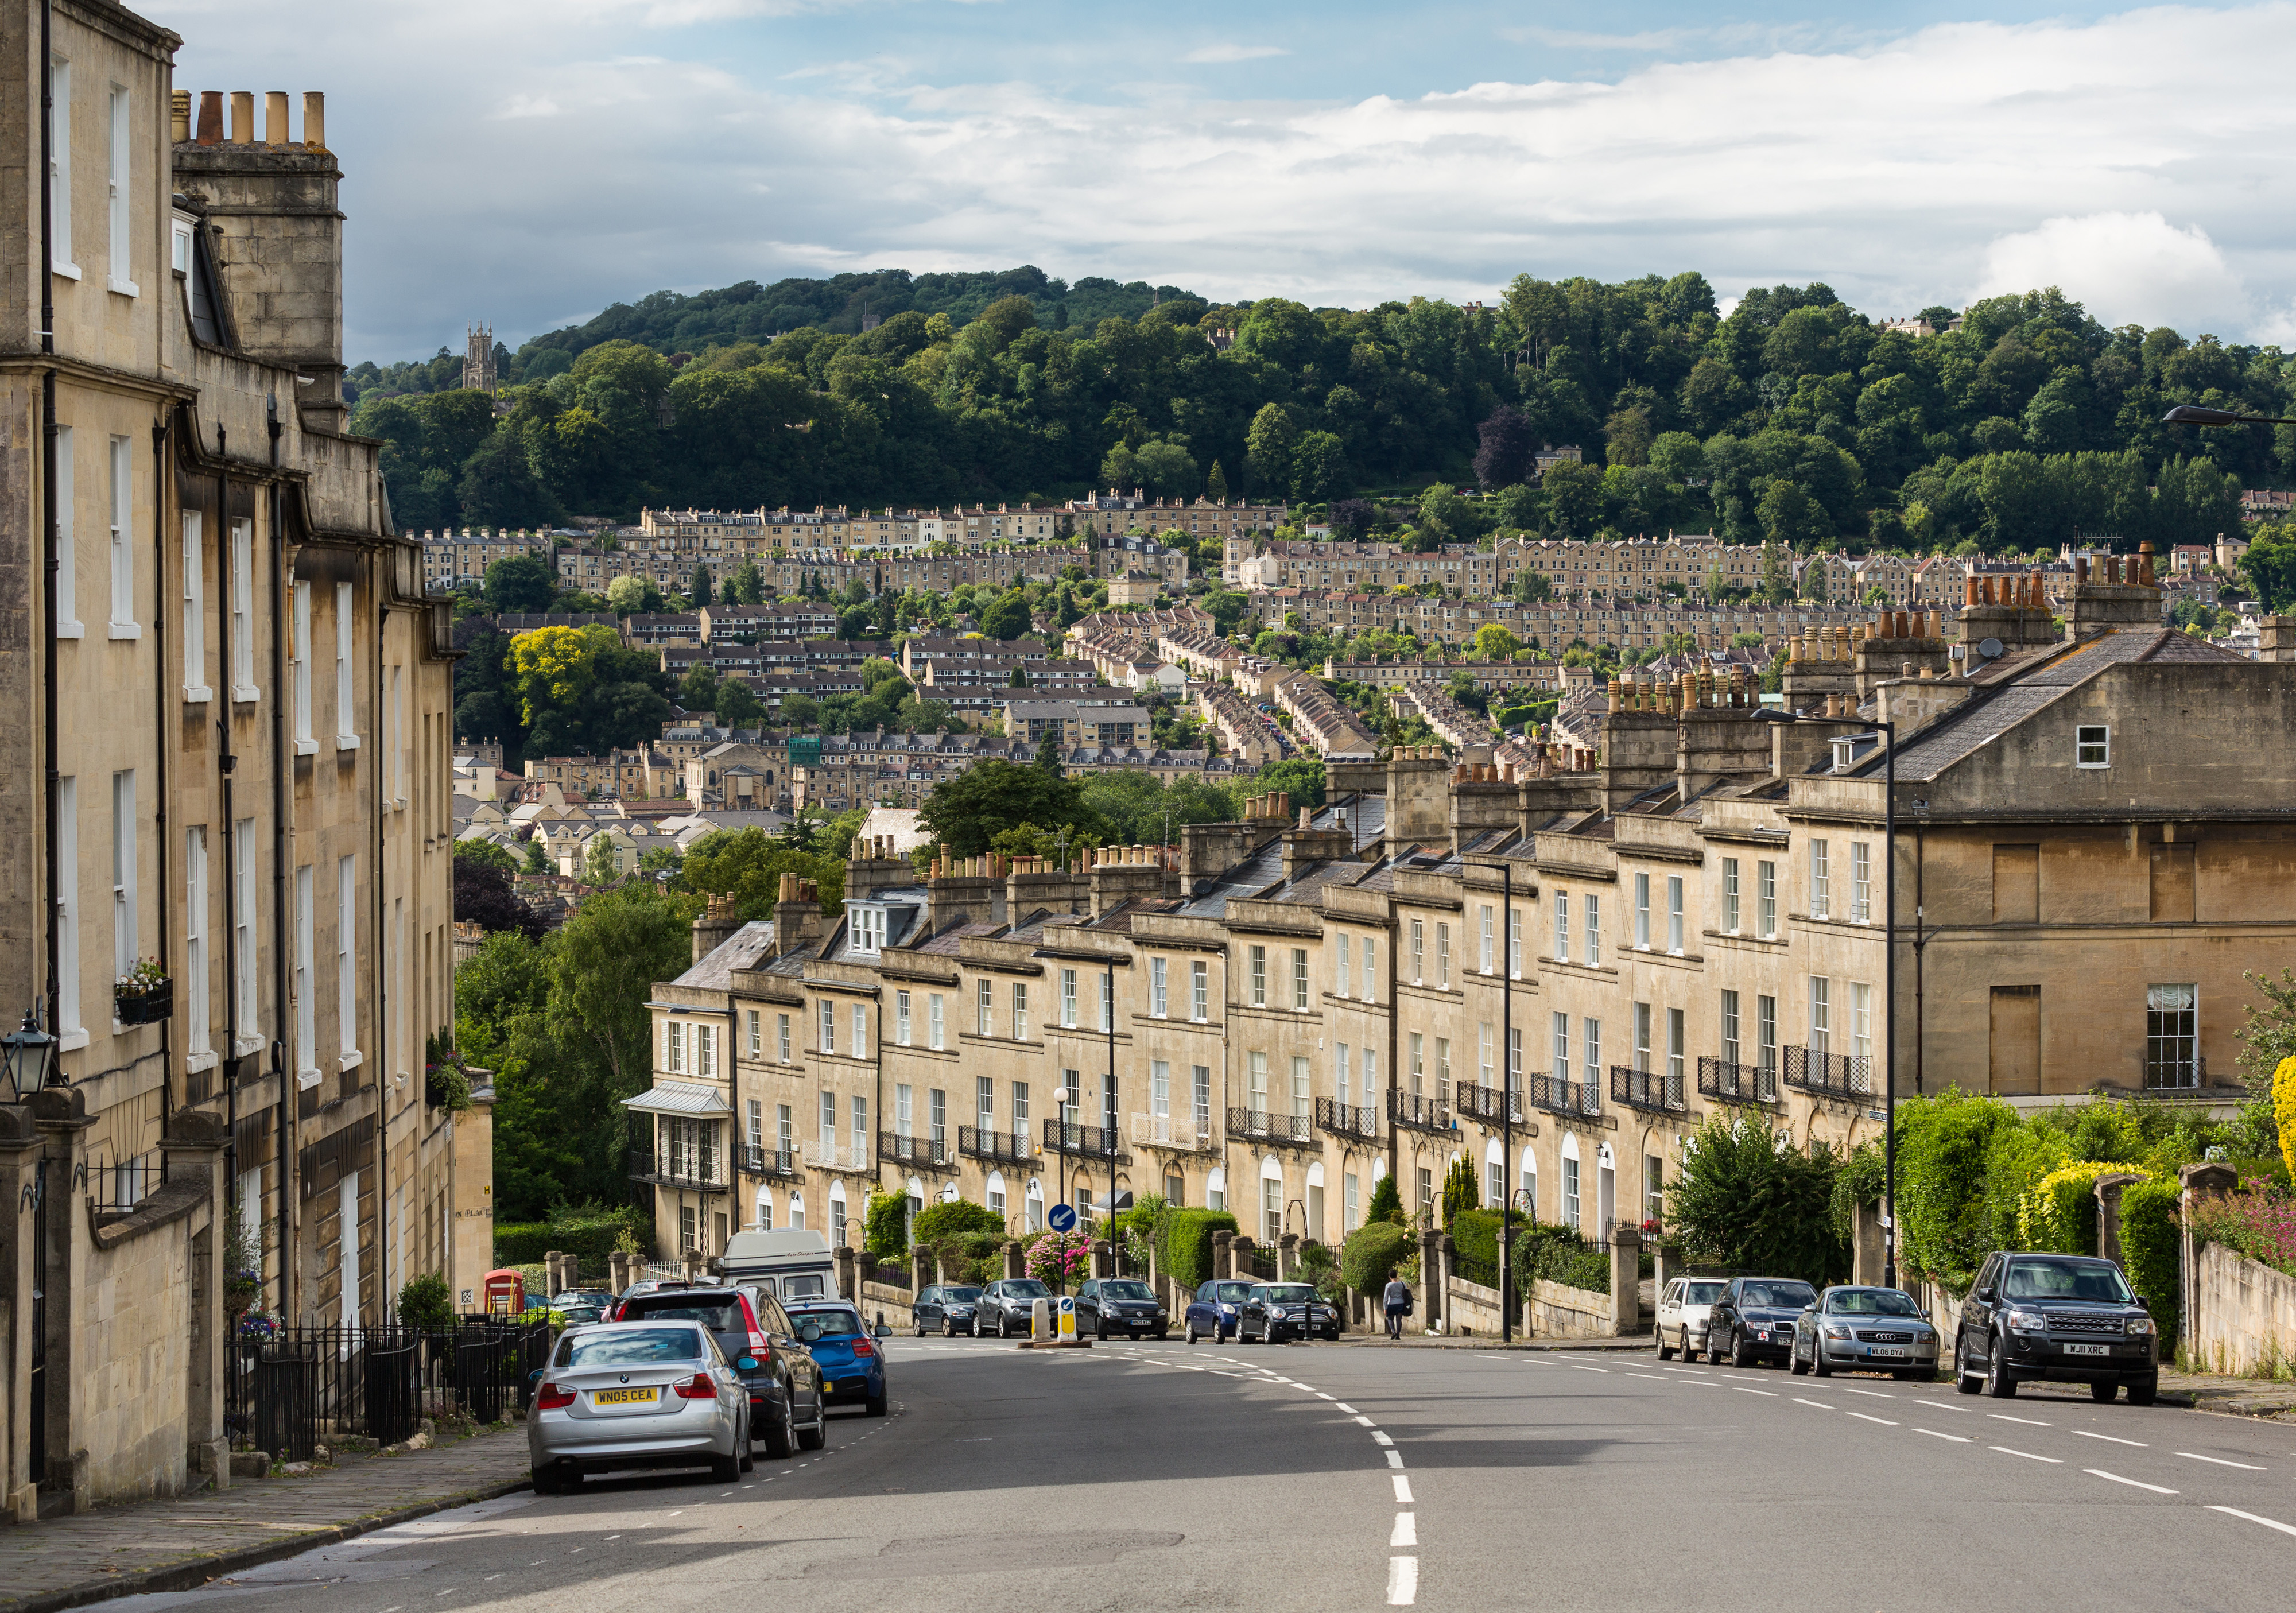 Https Commons Wikimedia Org Wiki File Bathwick Hill Bath Somerset Uk Diliff Jpg